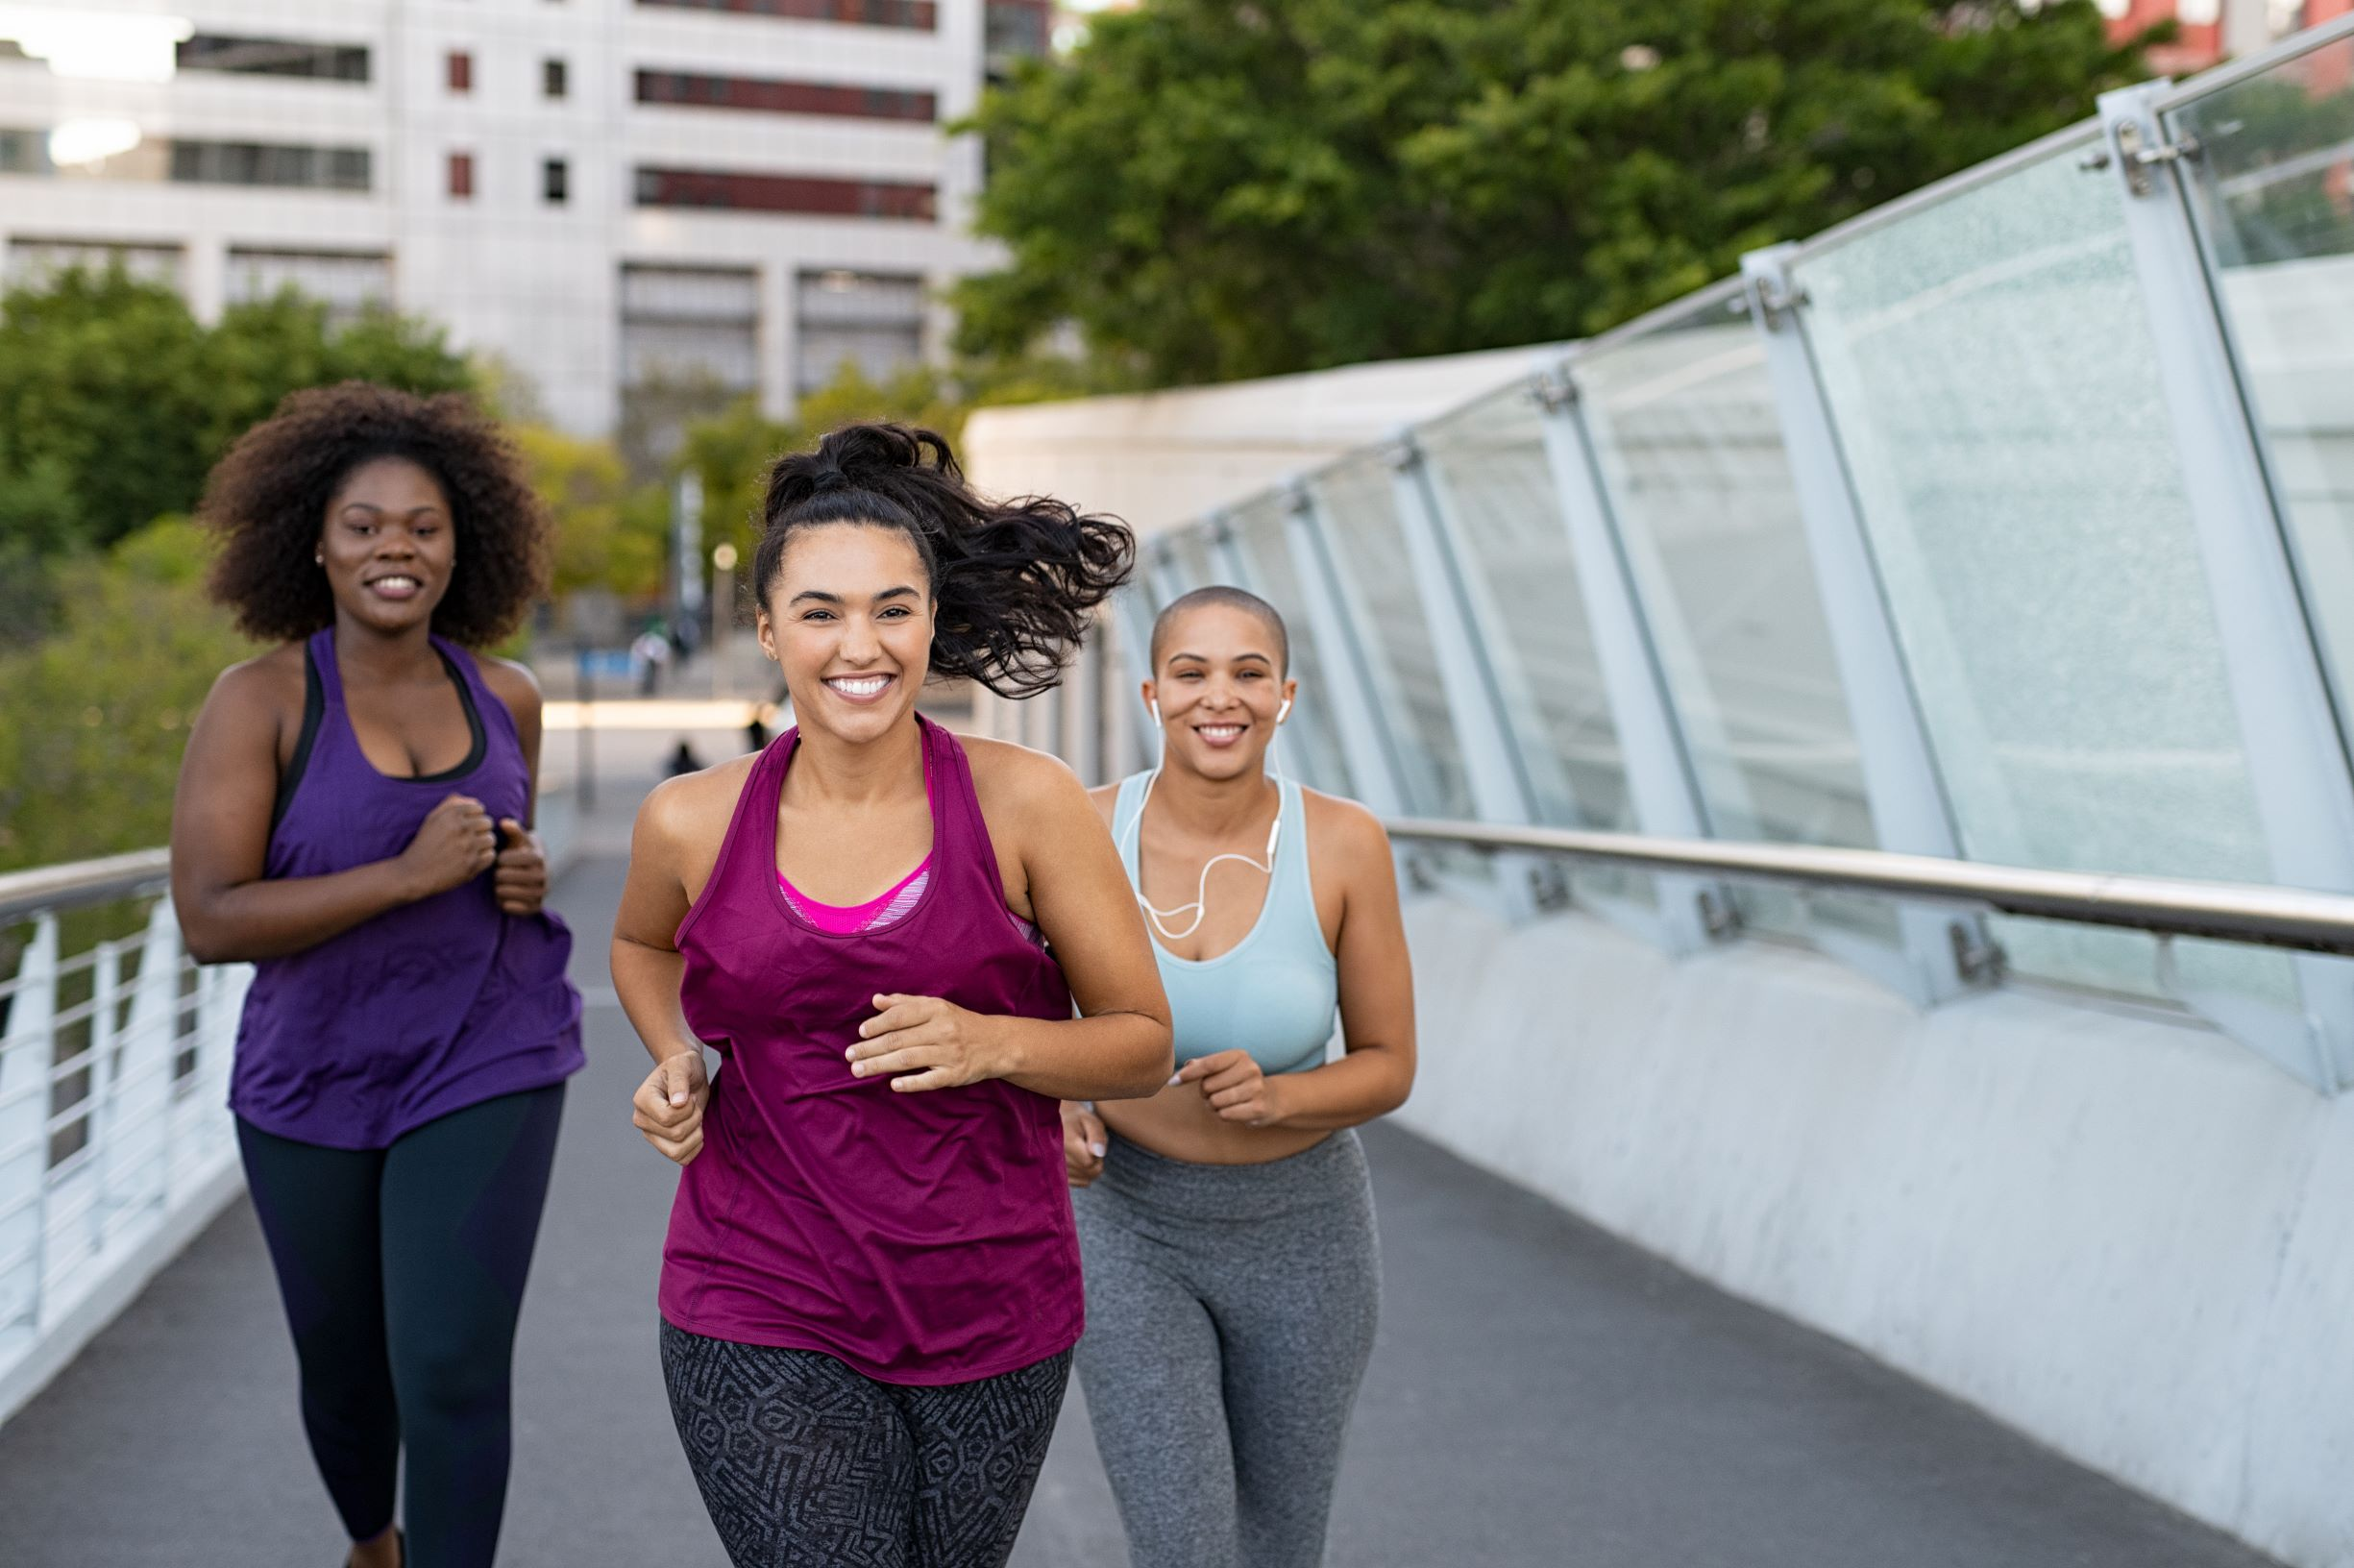 Group of women jogging together outside.